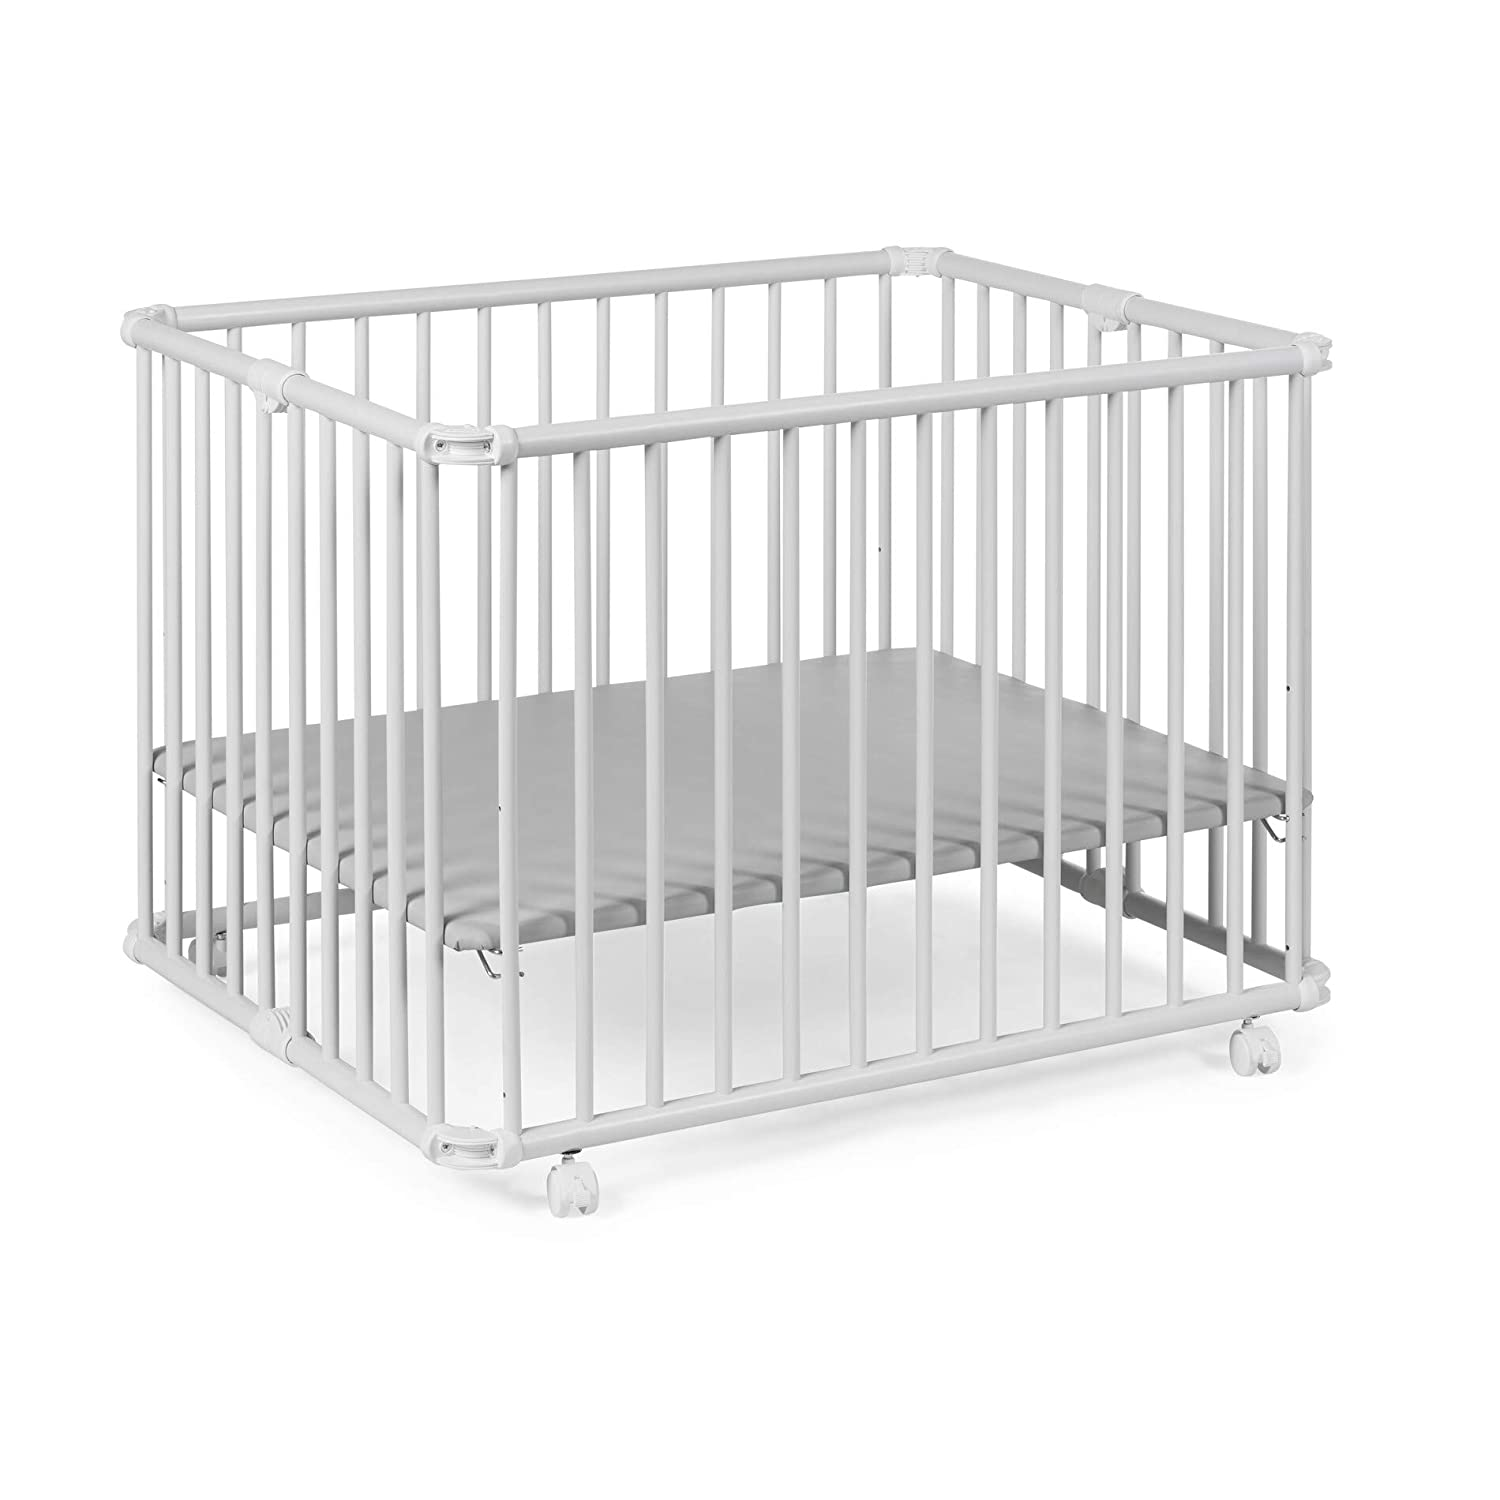 Geuther Lucilee 2261+ WE 005 Playpen 14.18 kg White